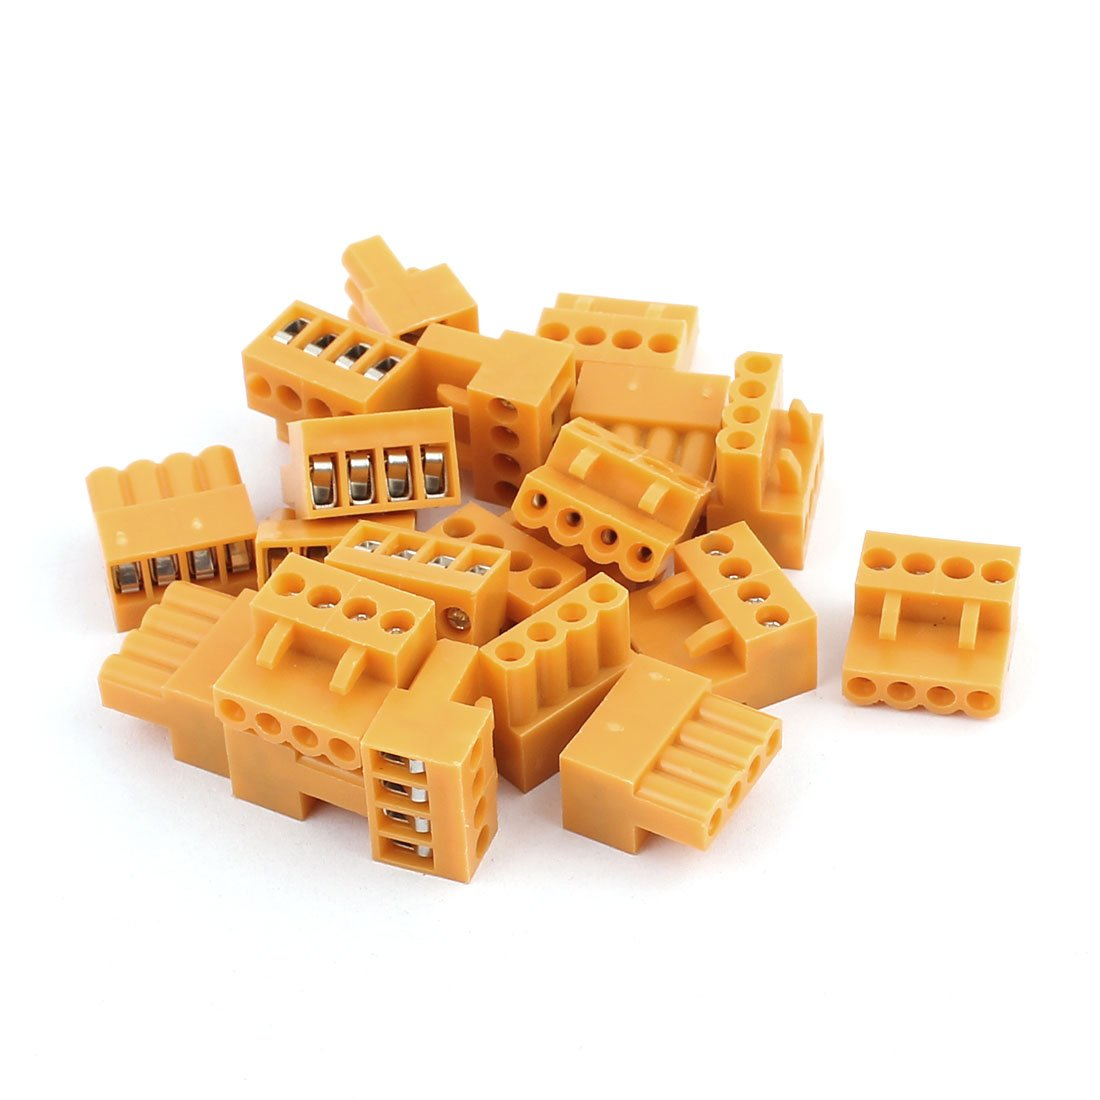 uxcell 20Pcs 300V HT3.96K 3.96mm Pitch 4P PCB Screw Terminal Block Connector Orange a16122000ux0530